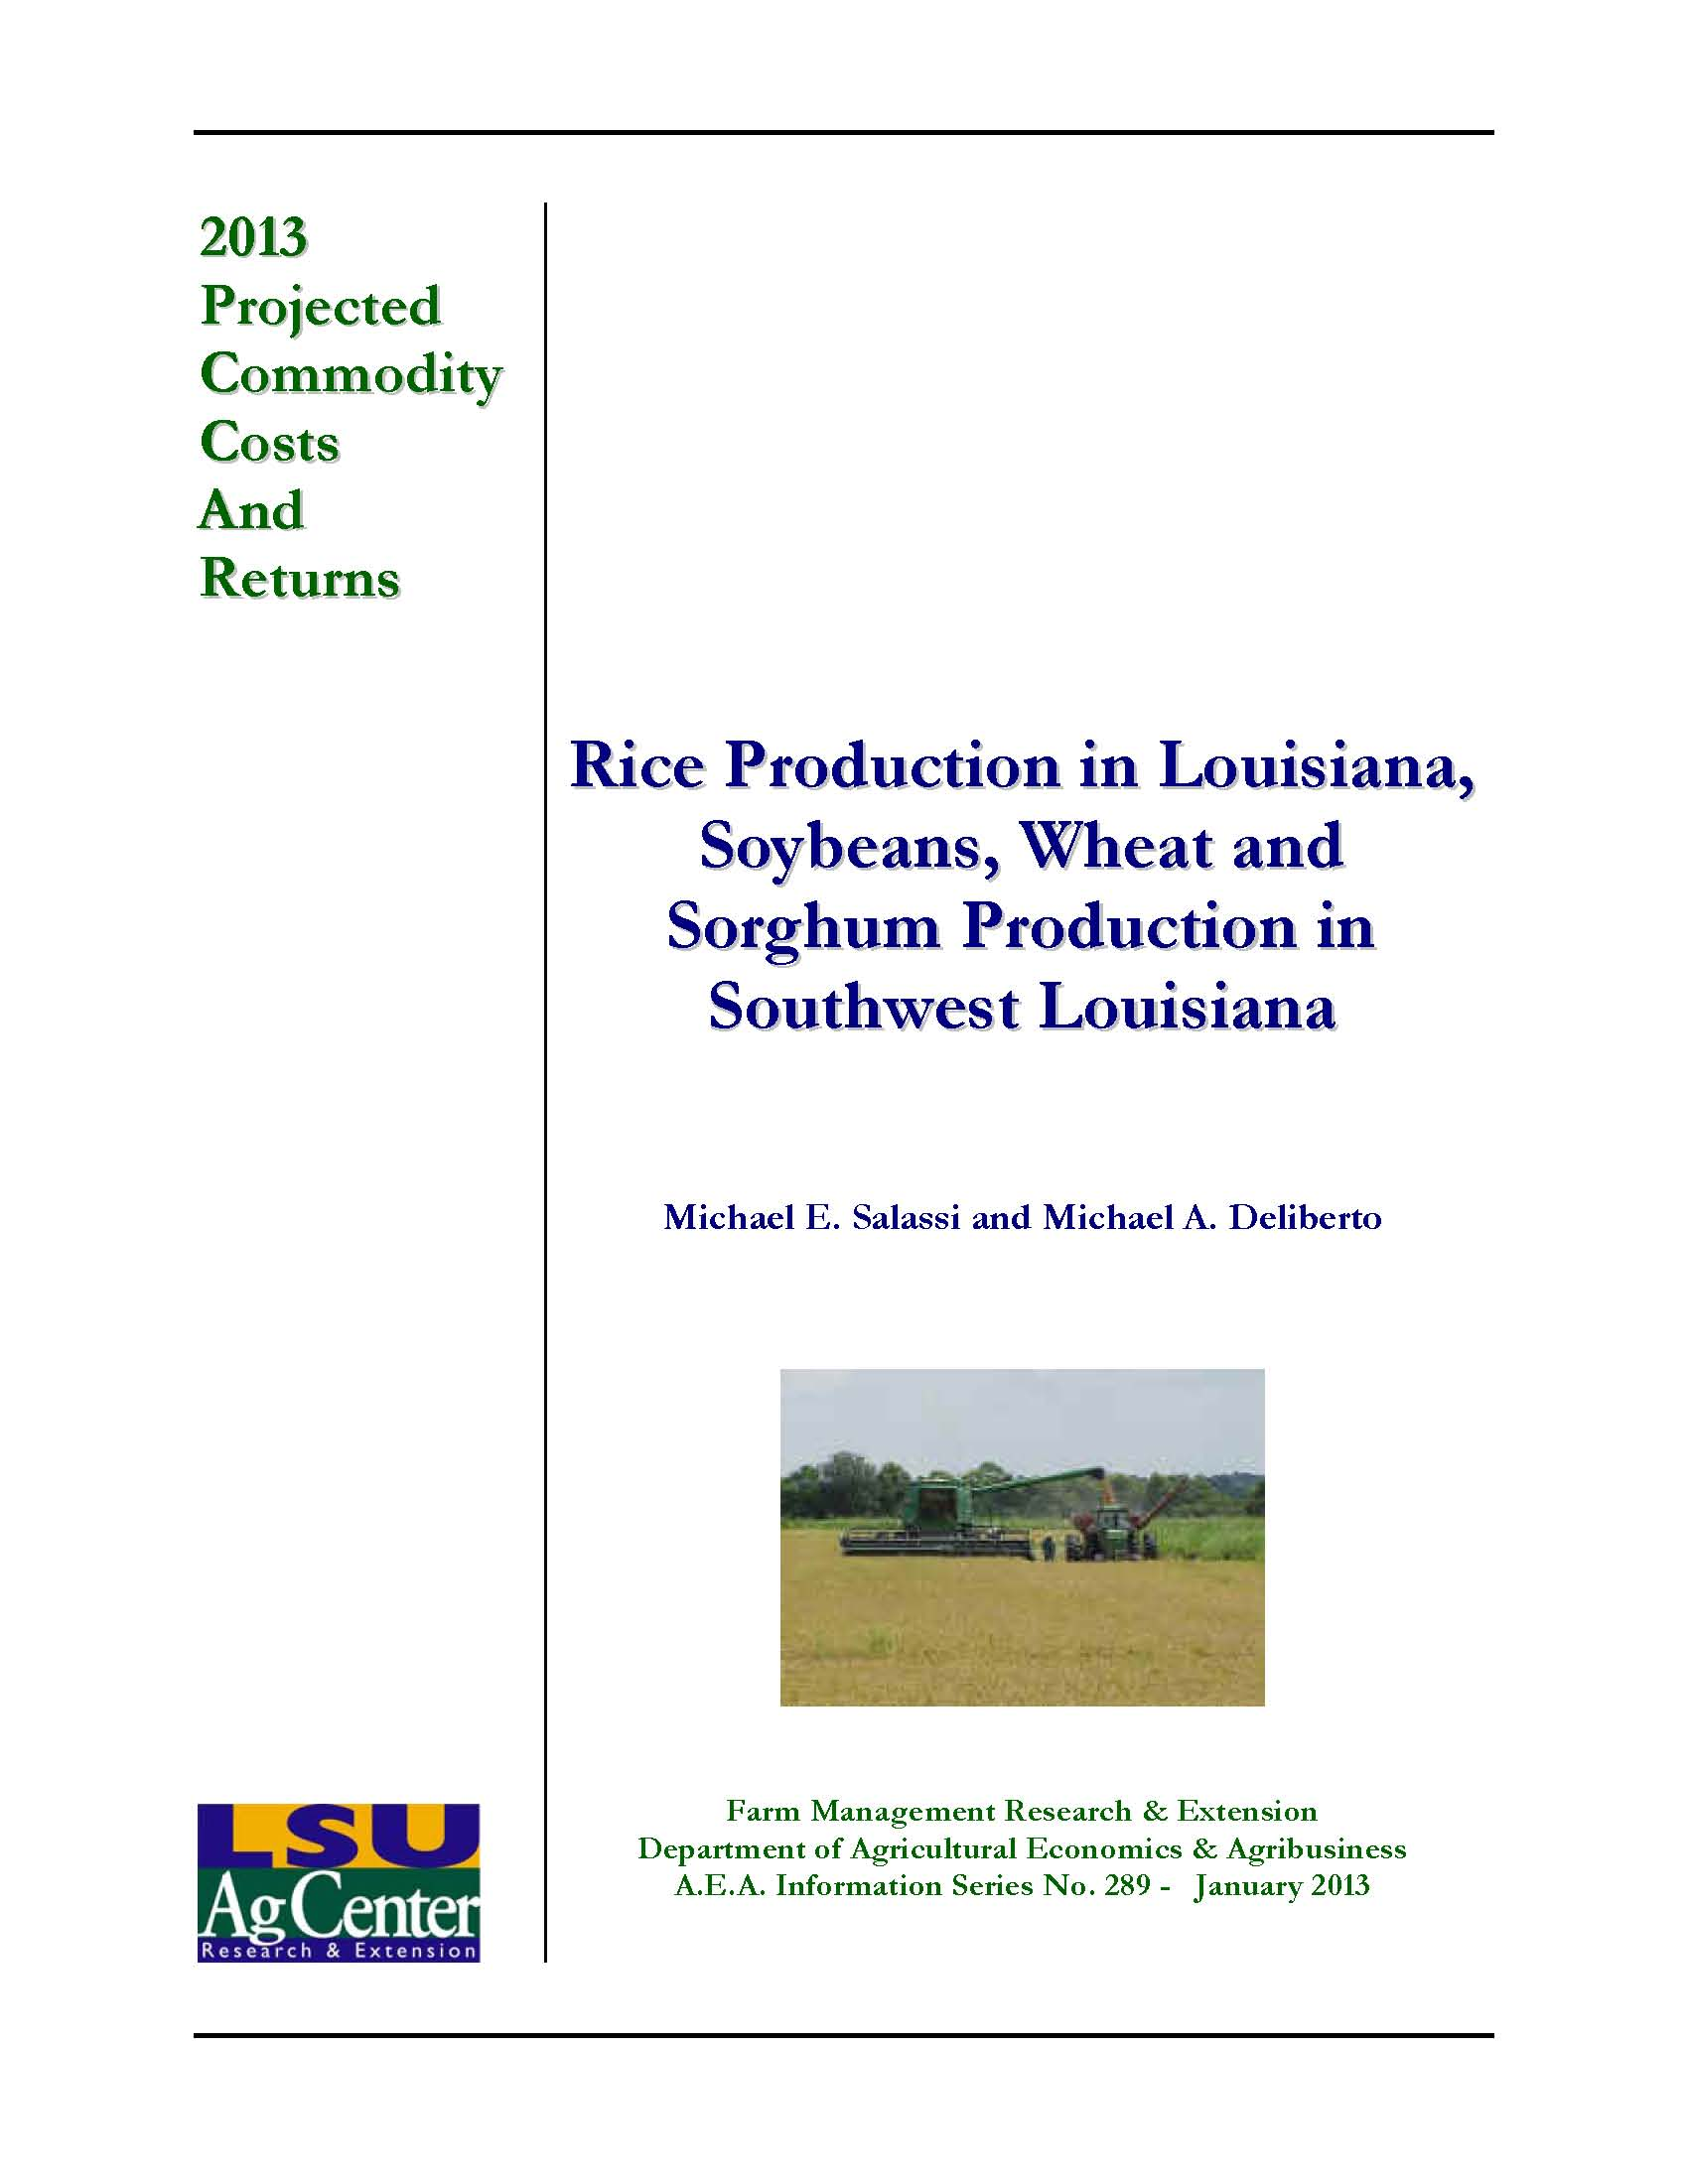 2013 Projected Louisiana Rice Production Costs